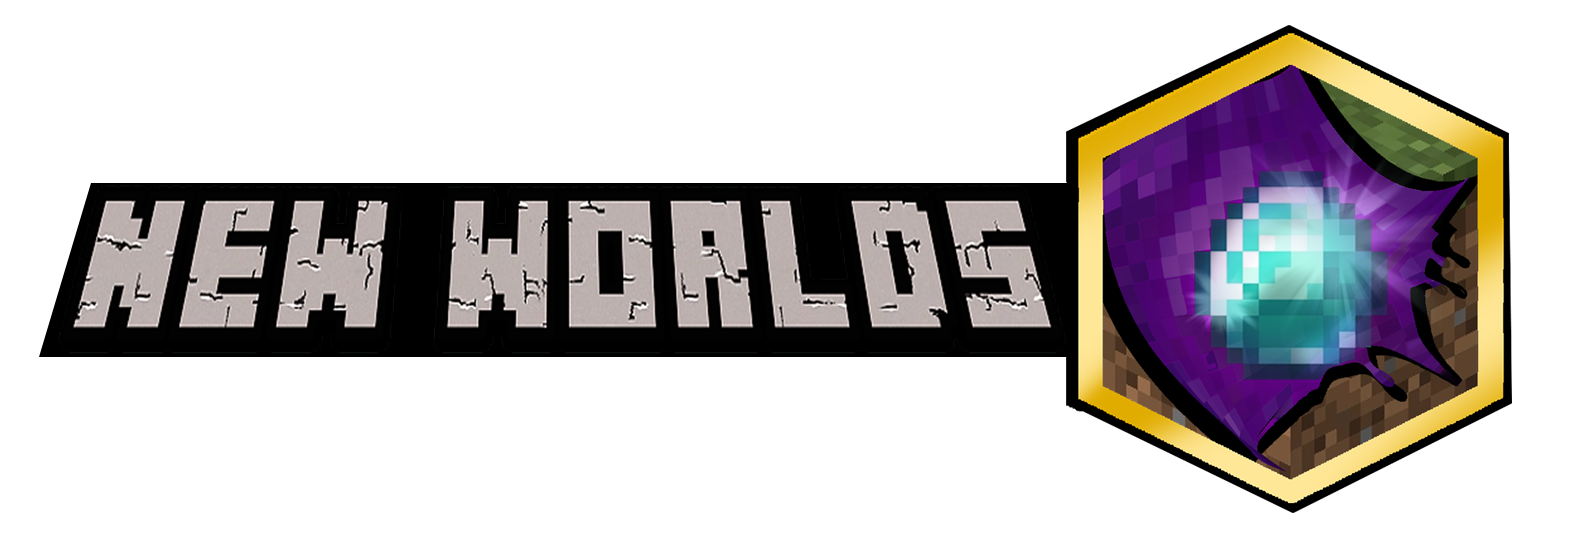 Banner for New Worlds SMP server